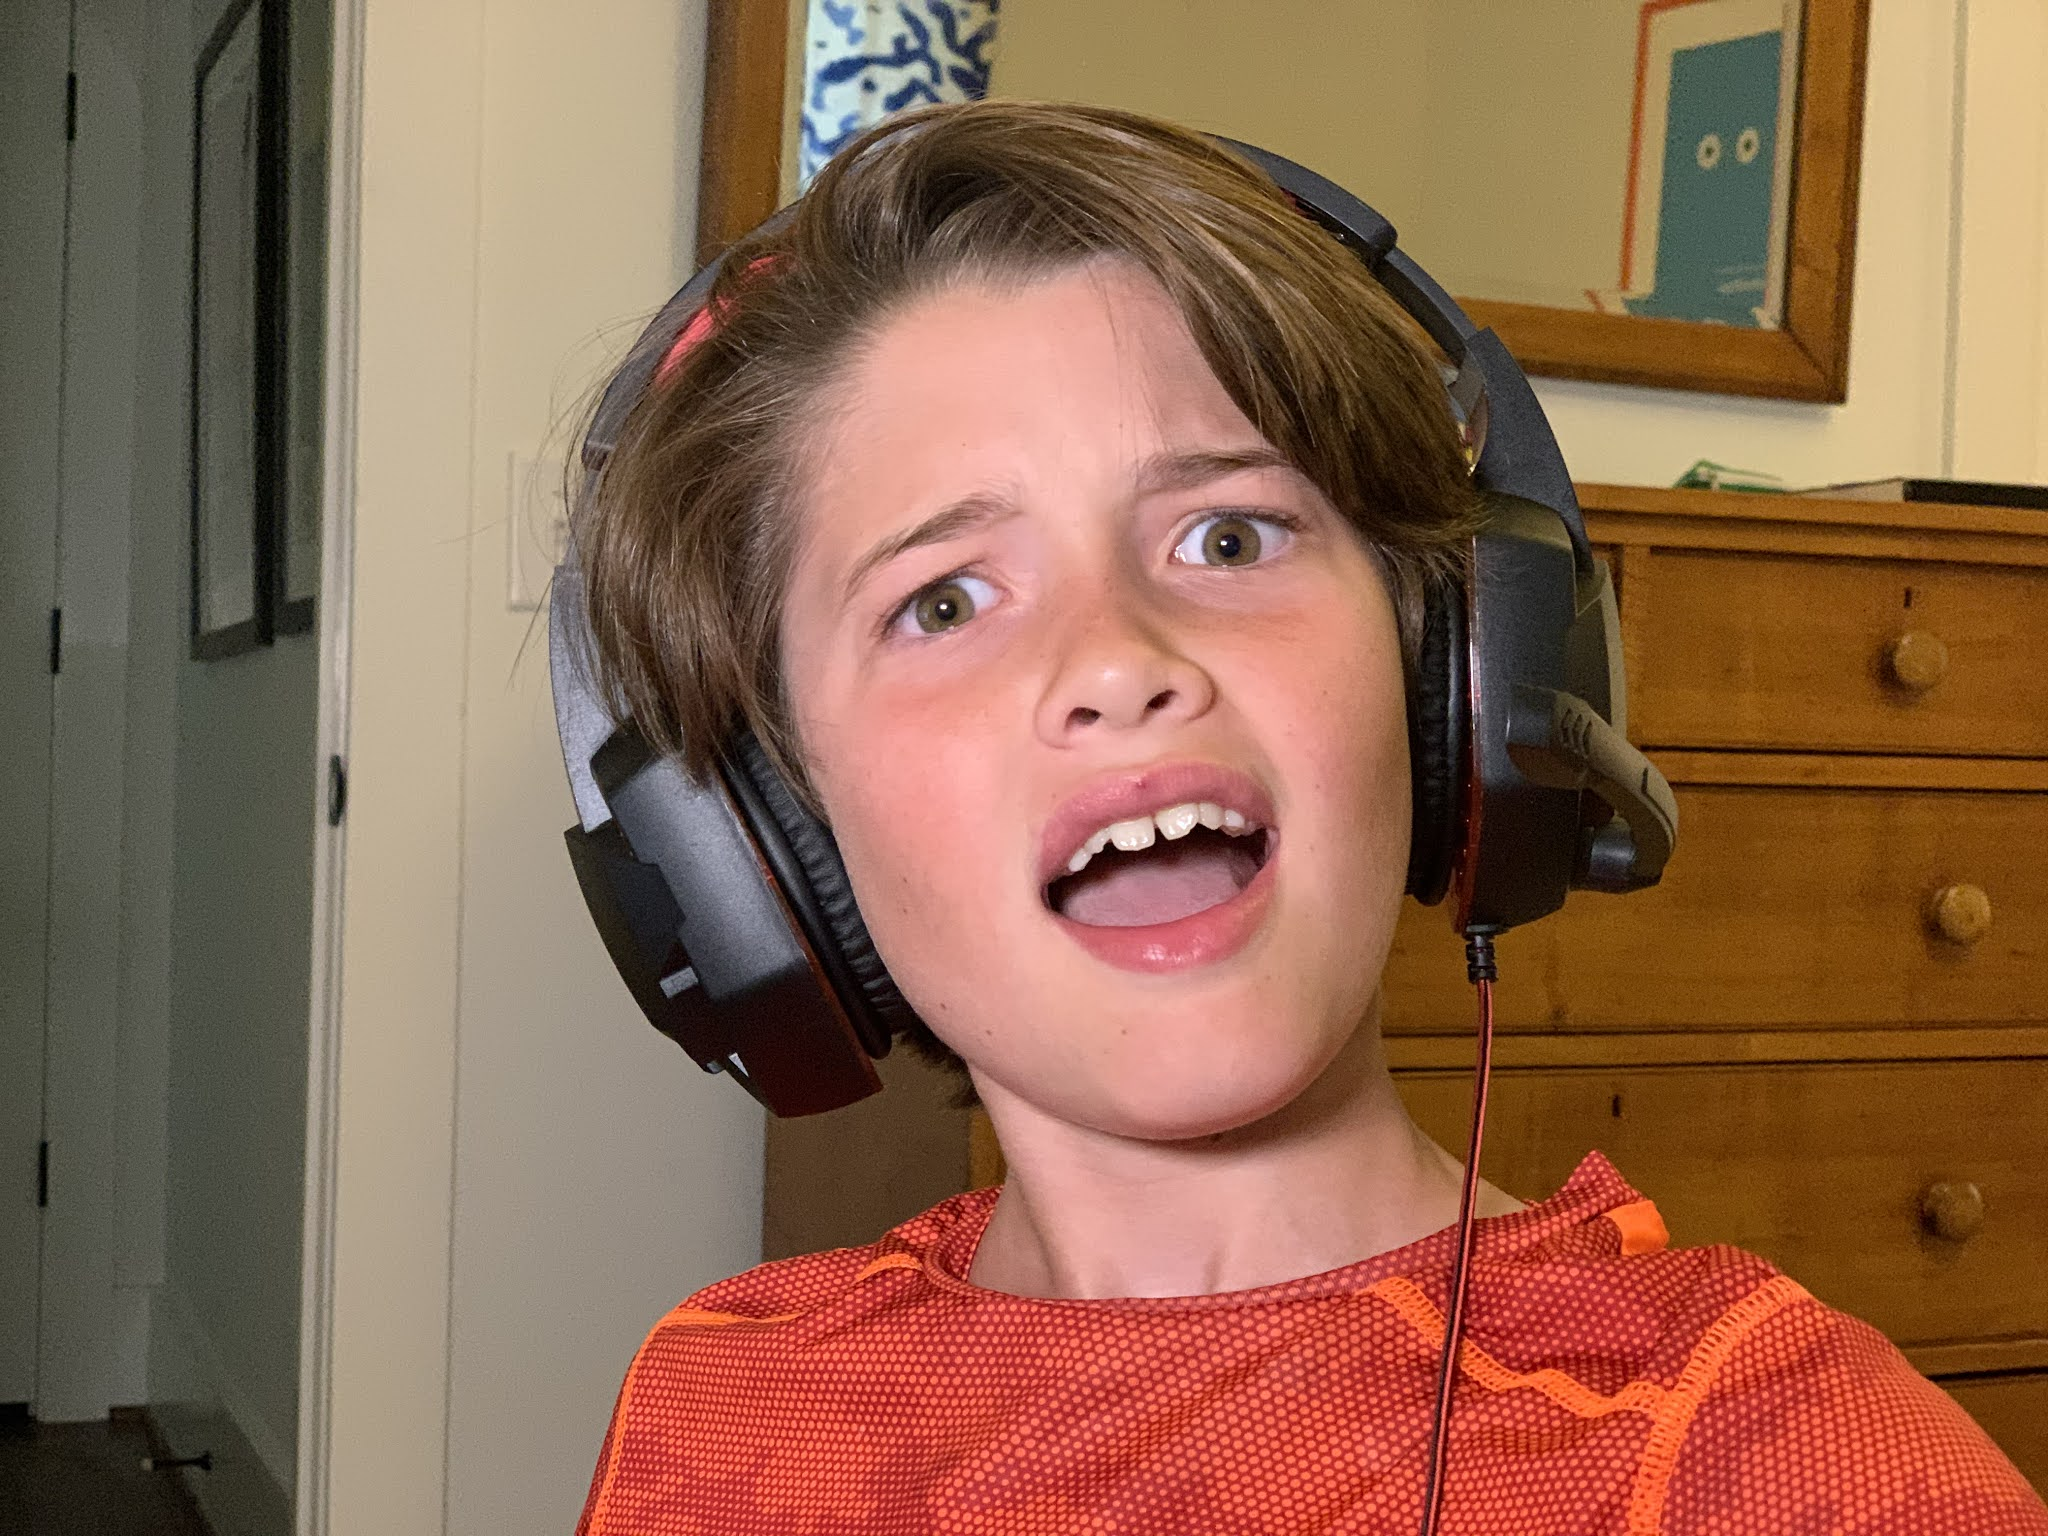 Yes, We Let Our Kid Start His Own YouTube Channel